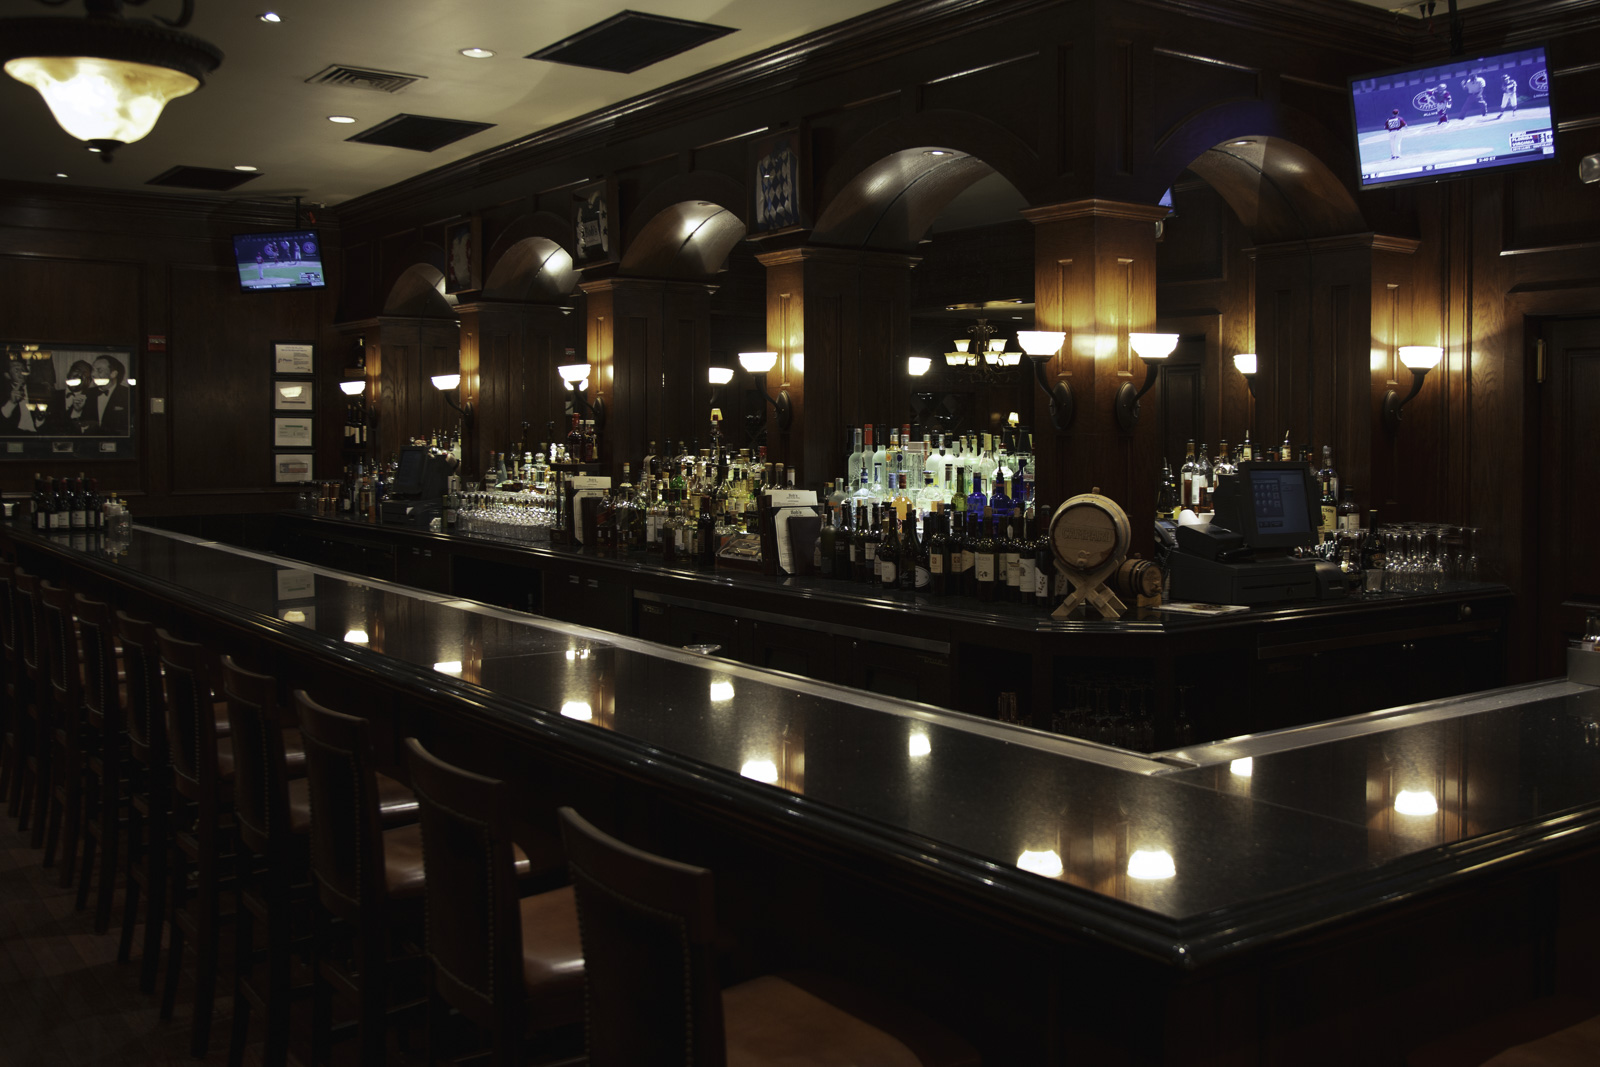 Bob's Steak & Chop House - Plano, TX (Bar)